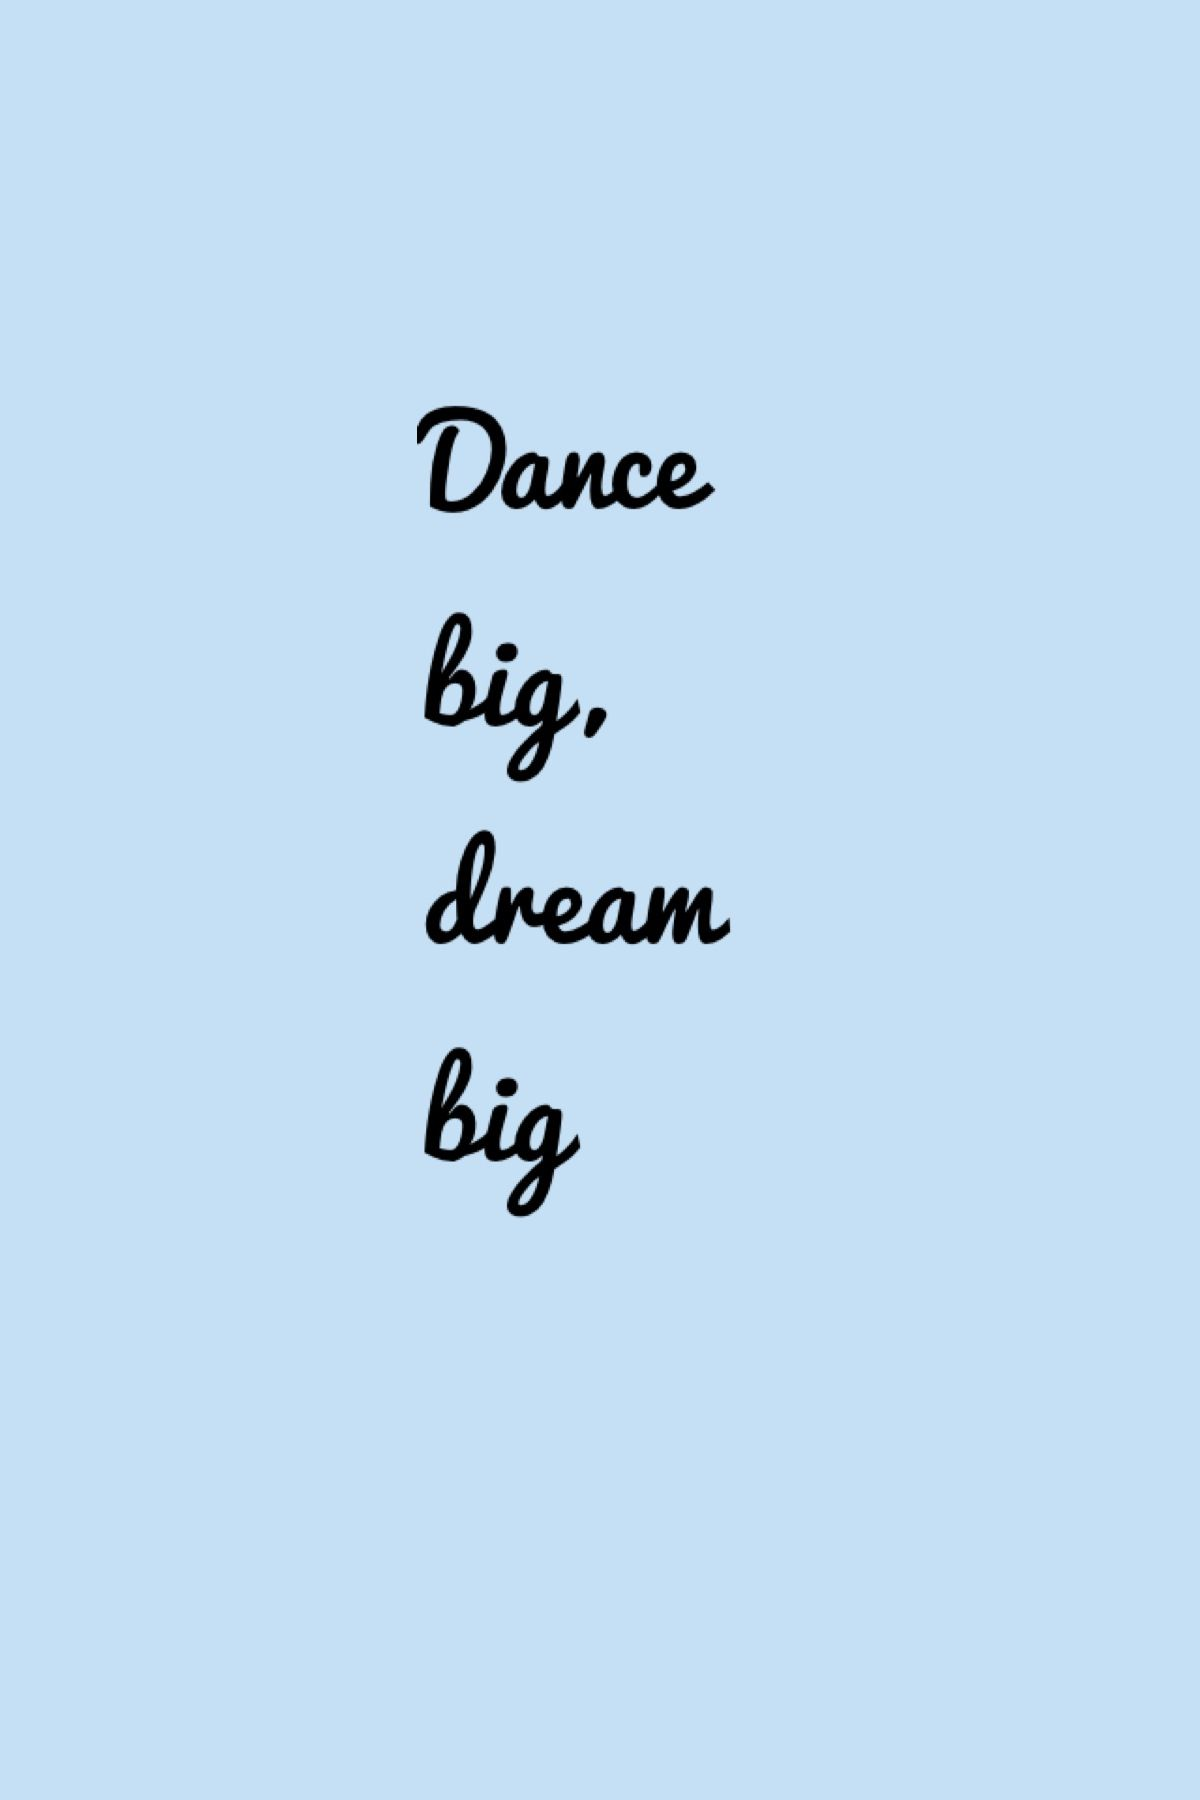 Dance Quotes Wallpapers Top Free Dance Quotes Backgrounds Wallpaperaccess